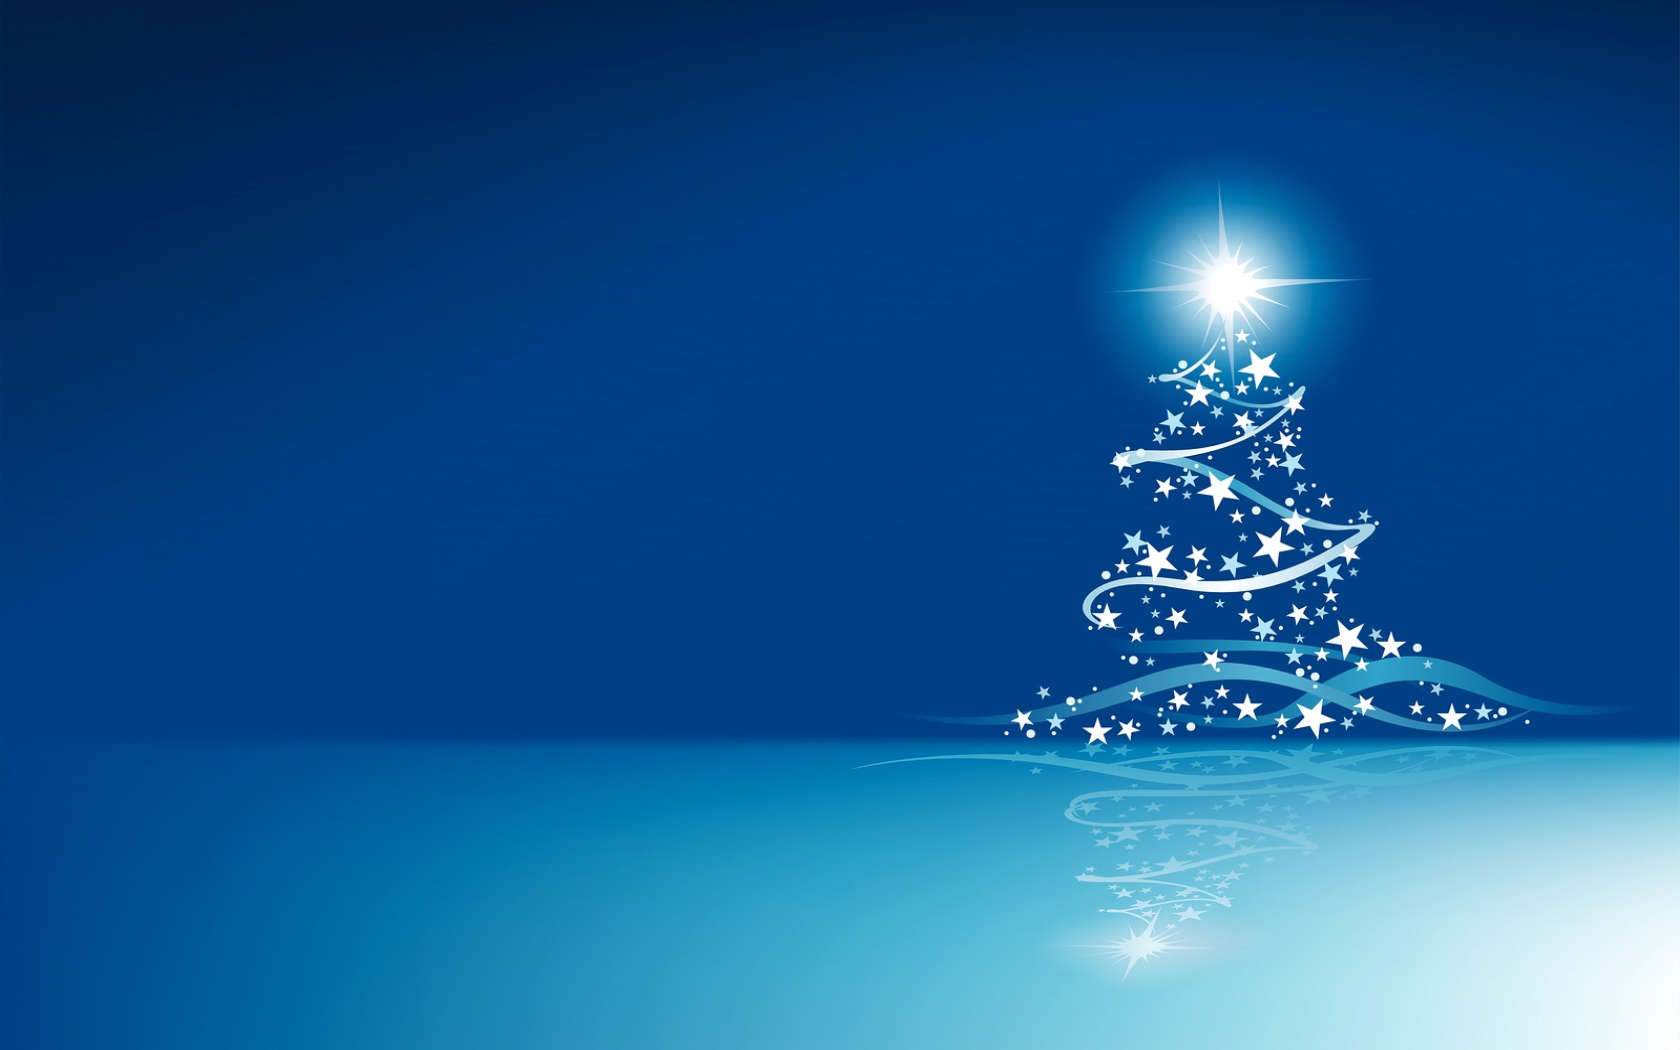 Blue Christmas Background 9447 Hd Wallpapers